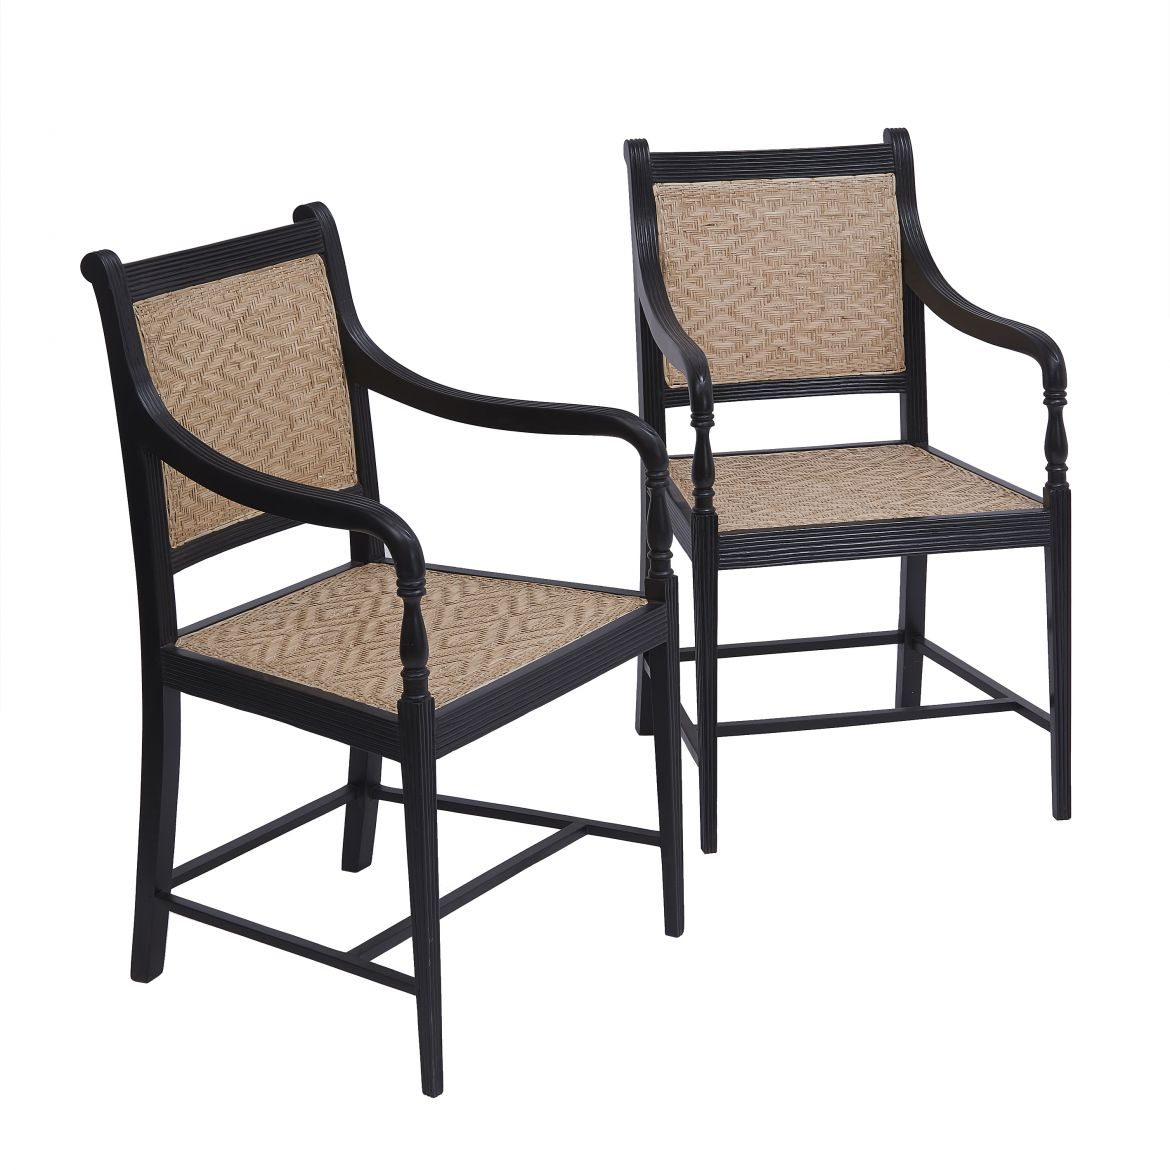 George III Style Anglo Indian Ebony Chairs